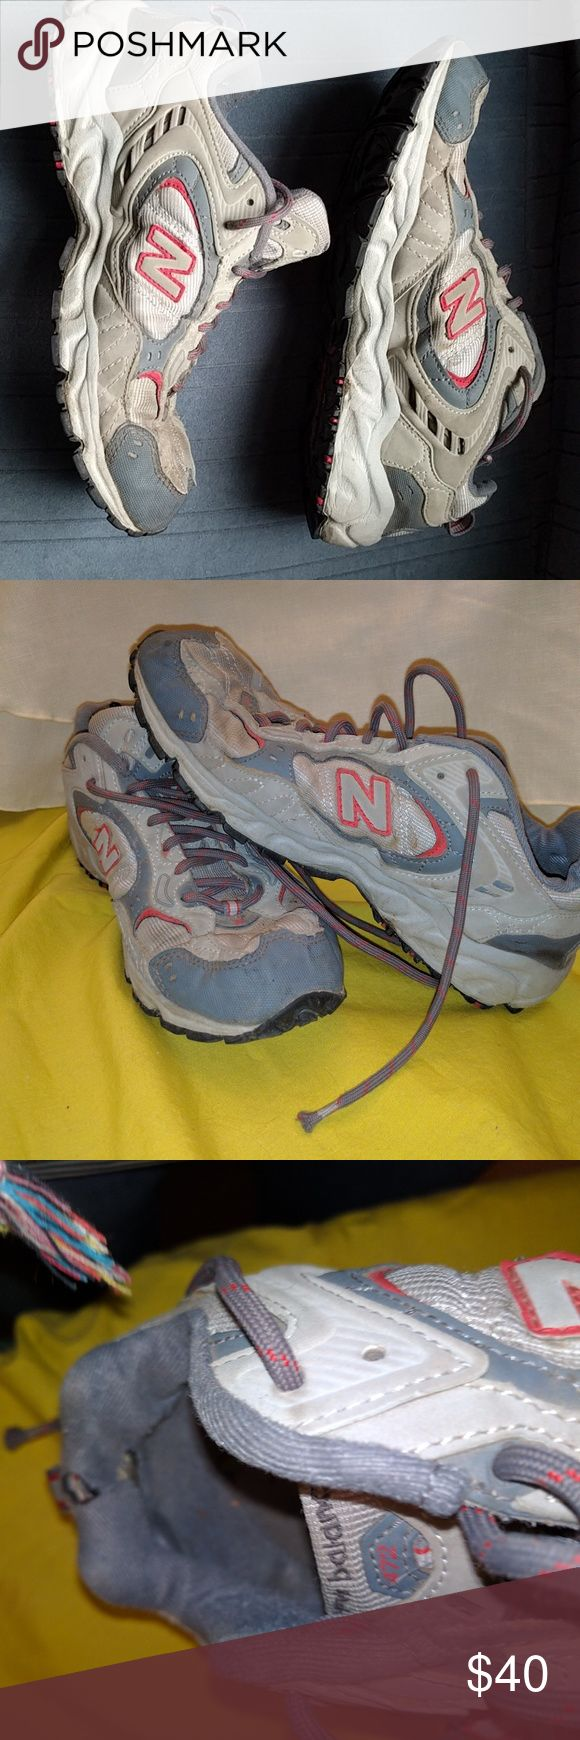 New balance 472 hiking shoes Hiking tennis shoes, there is a hole in the lining of left shoes at the top. New Balance Shoes